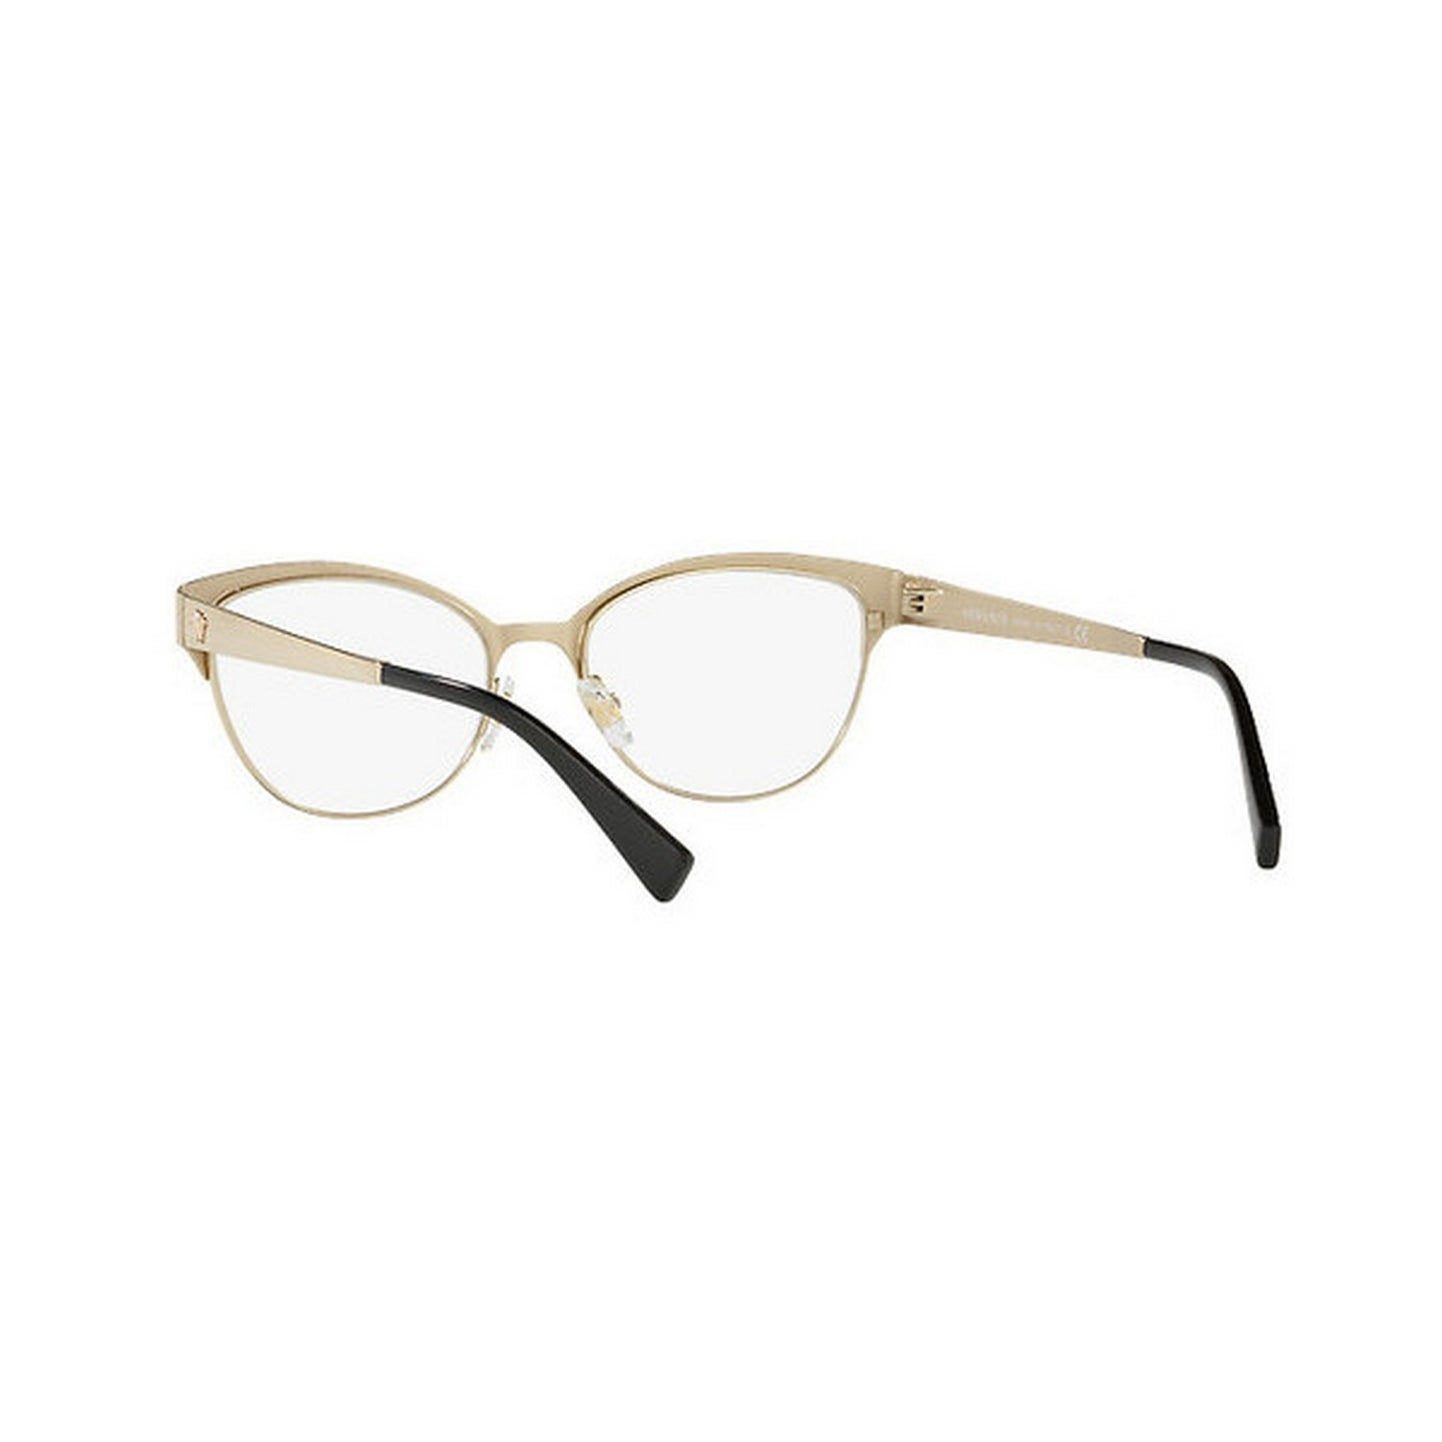 6bfd26025d2 Shop Versace Women s VE1240 1252 53 Oval Metal Gold Clear Eyeglasses - Free  Shipping Today - Overstock - 14779992